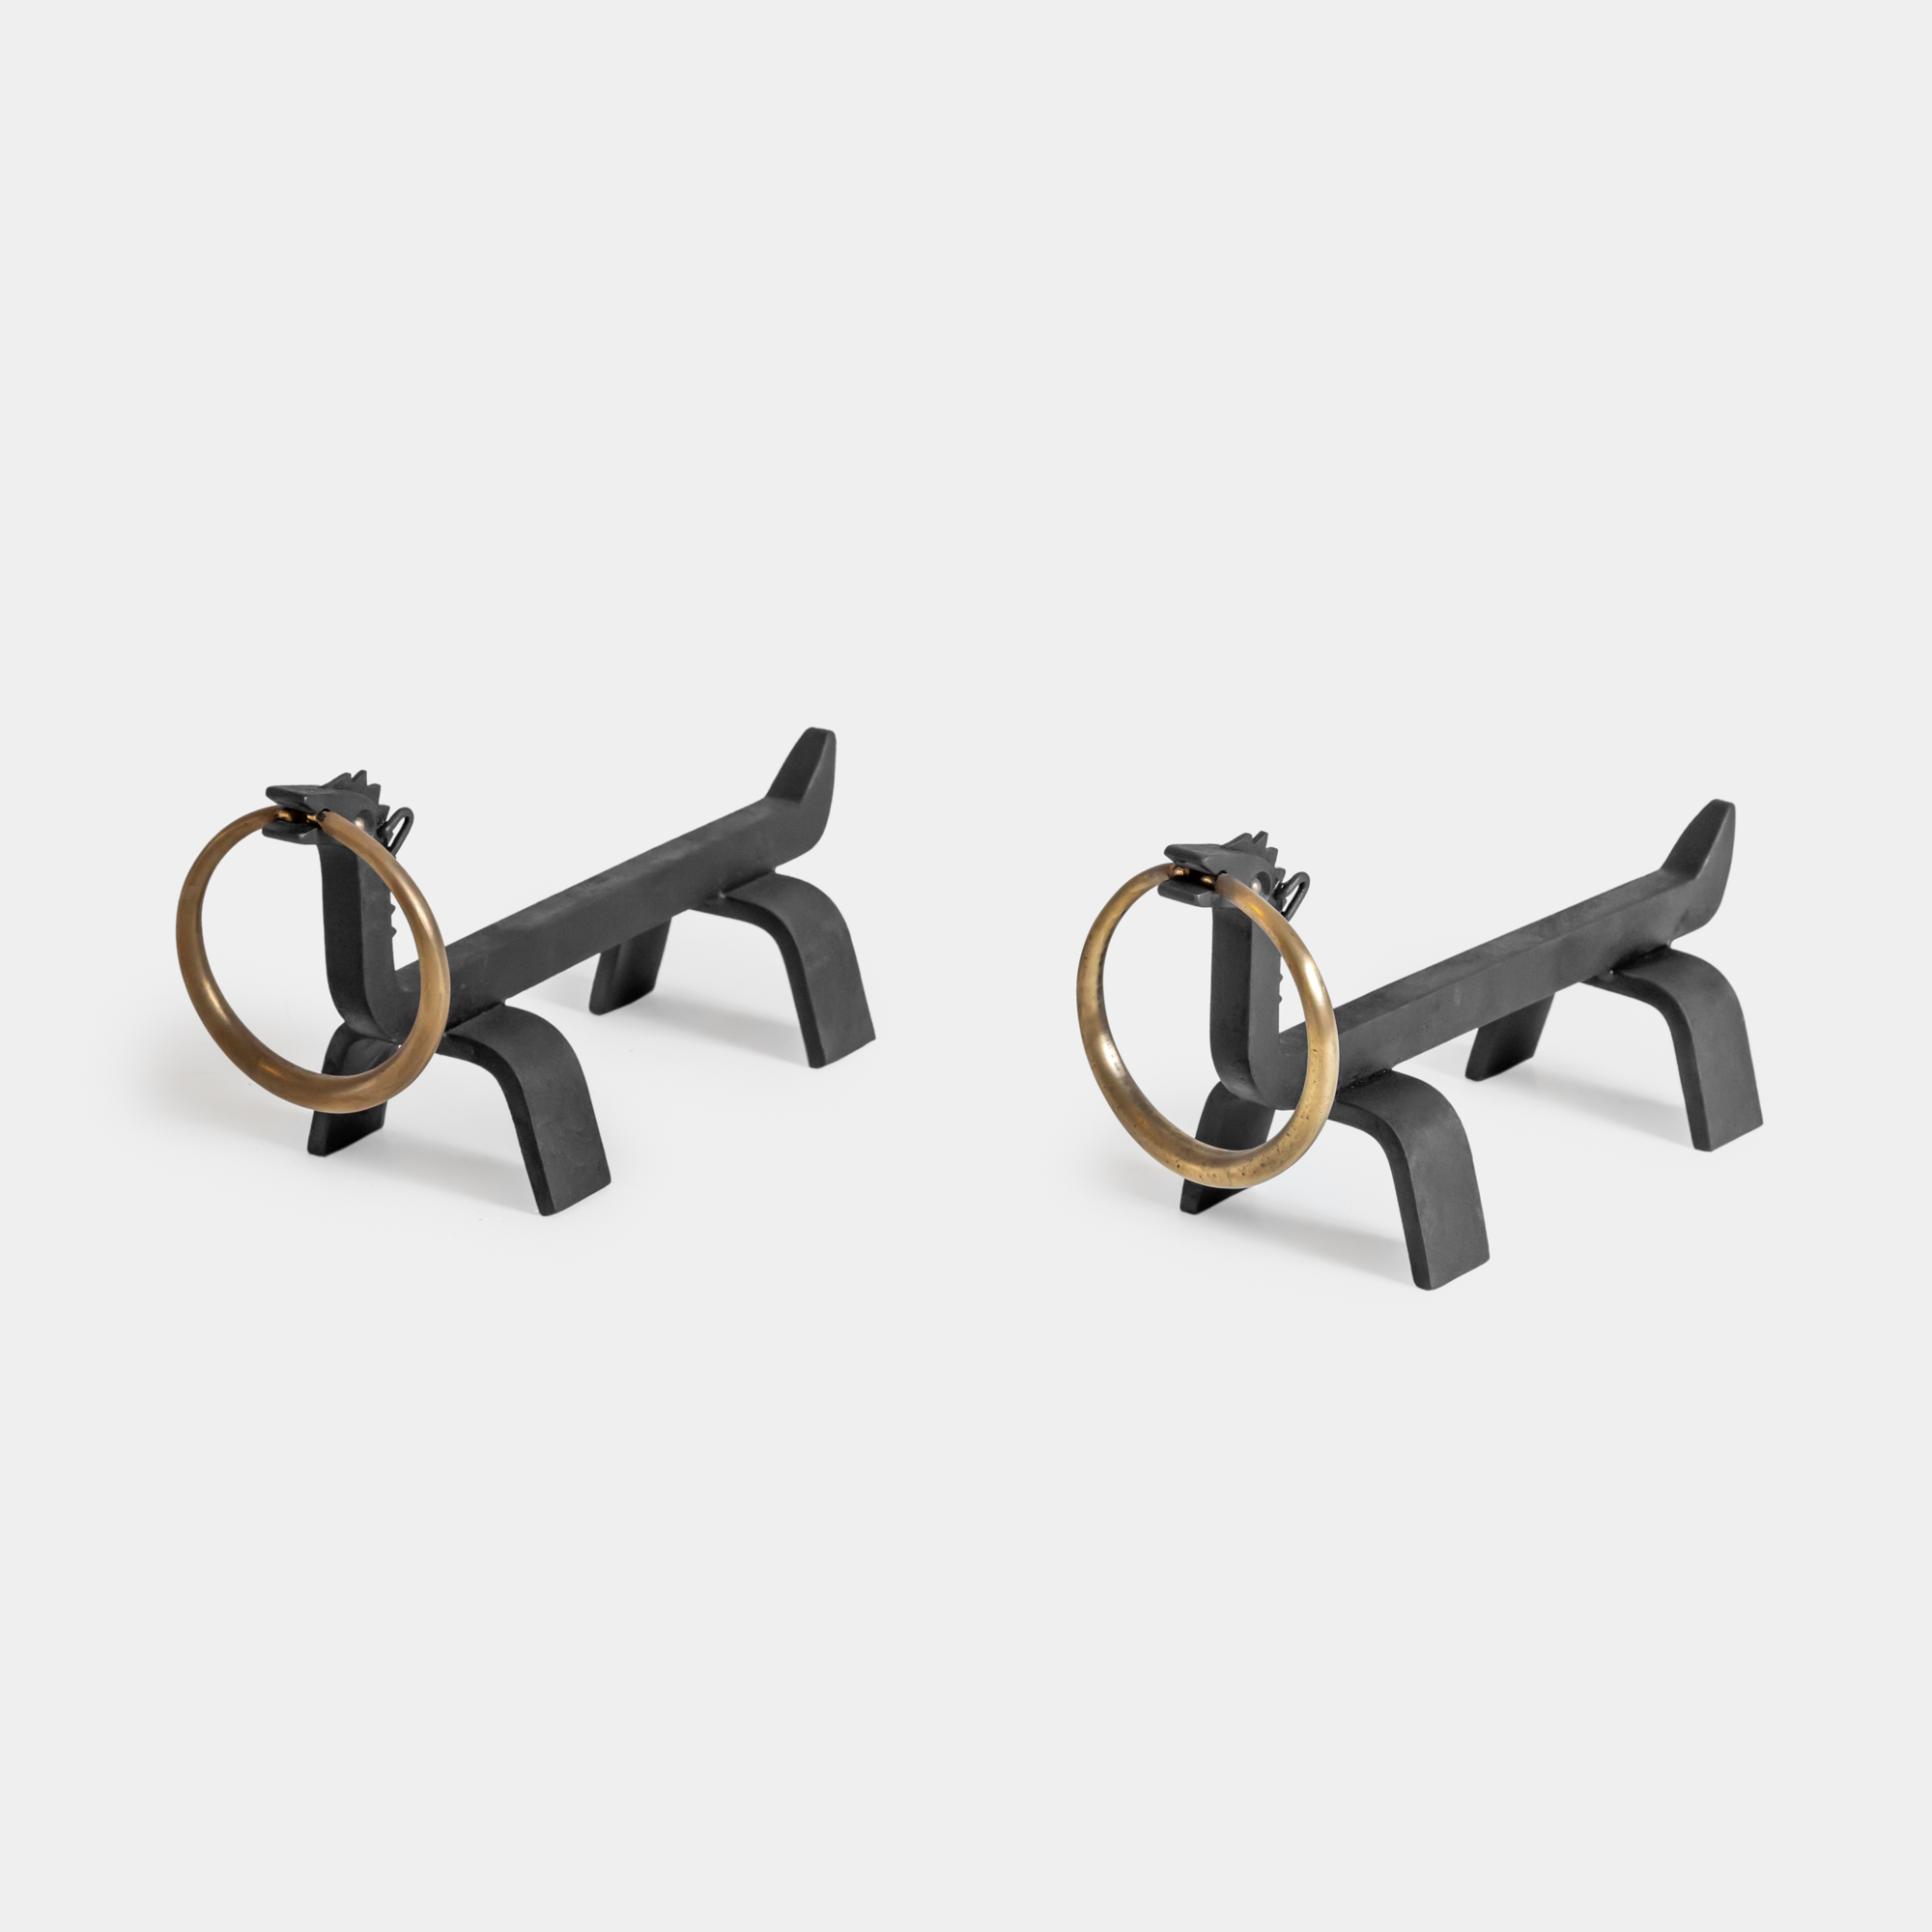 Pair of Andirons by Osvaldo Borsani for Arredamenti Borsani | soyun k.